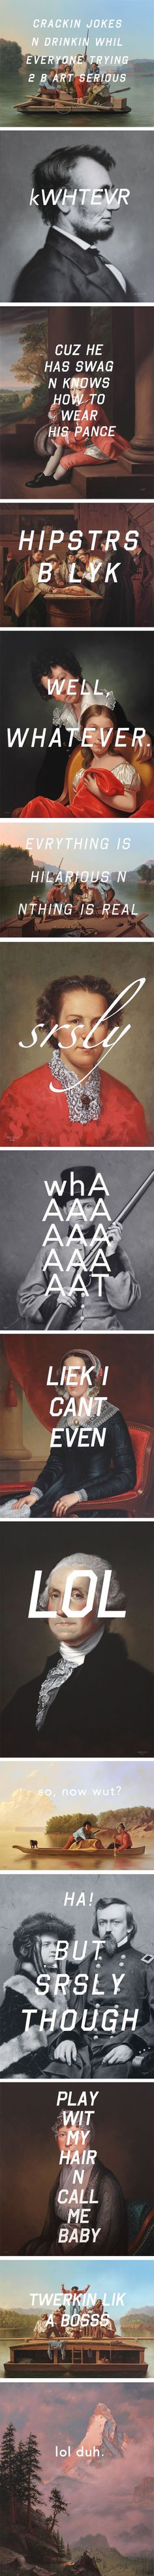 Shawn Huckins on the LPP blog.  All images via the artist.